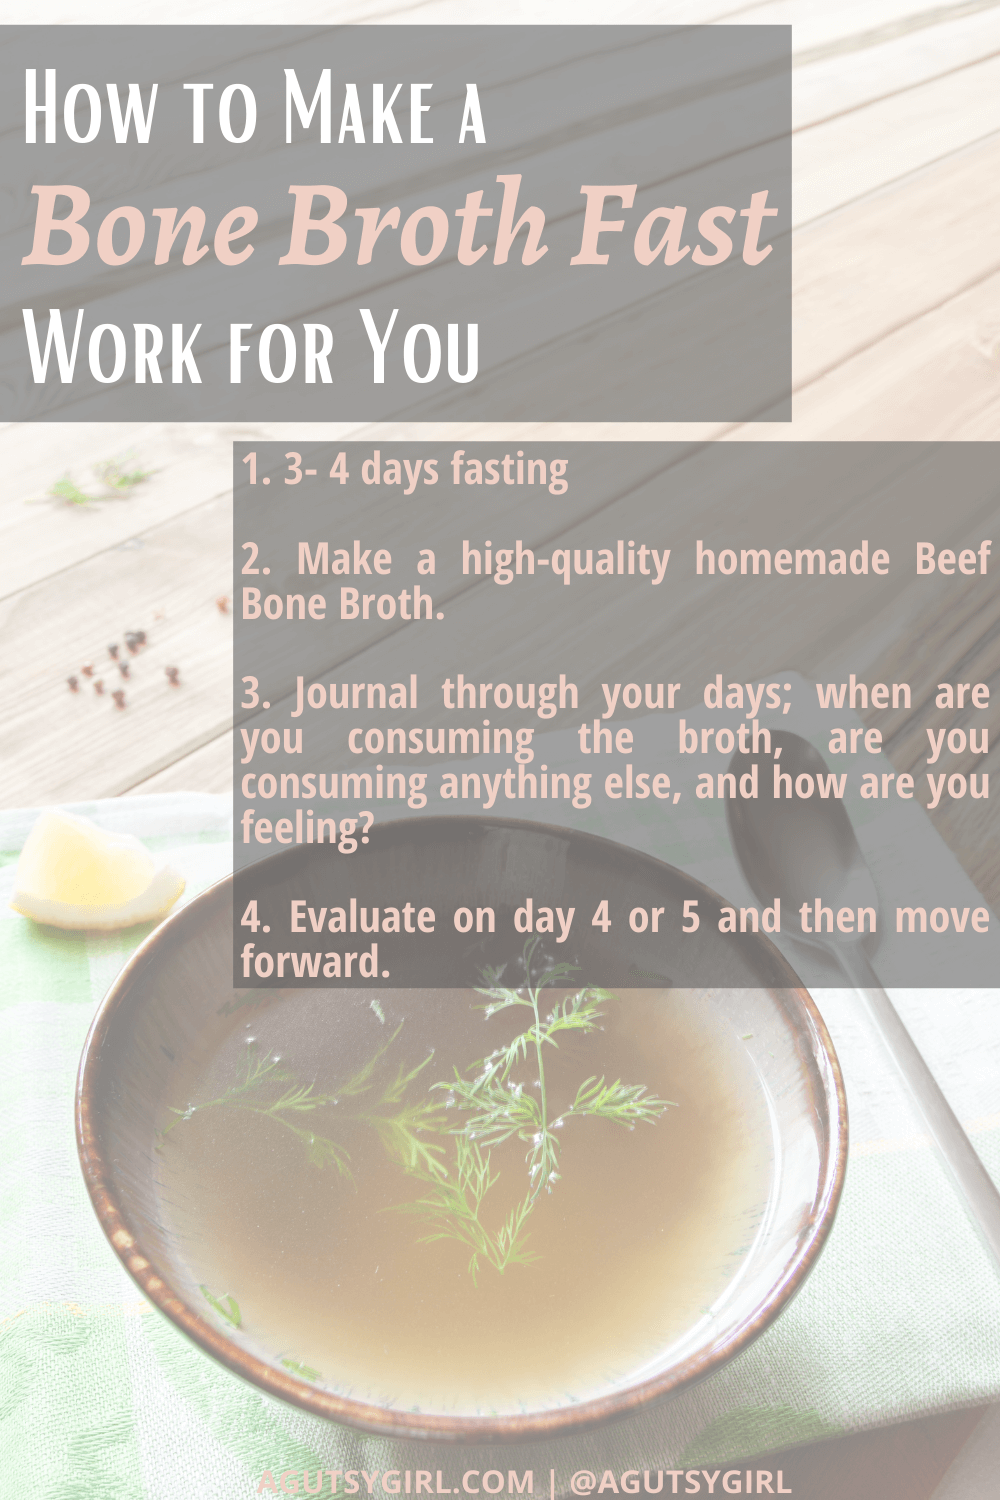 What is a Bone Broth Fast and how to make it work for you agutsygirl.com #bonebroth #bonebrothfast #fasting